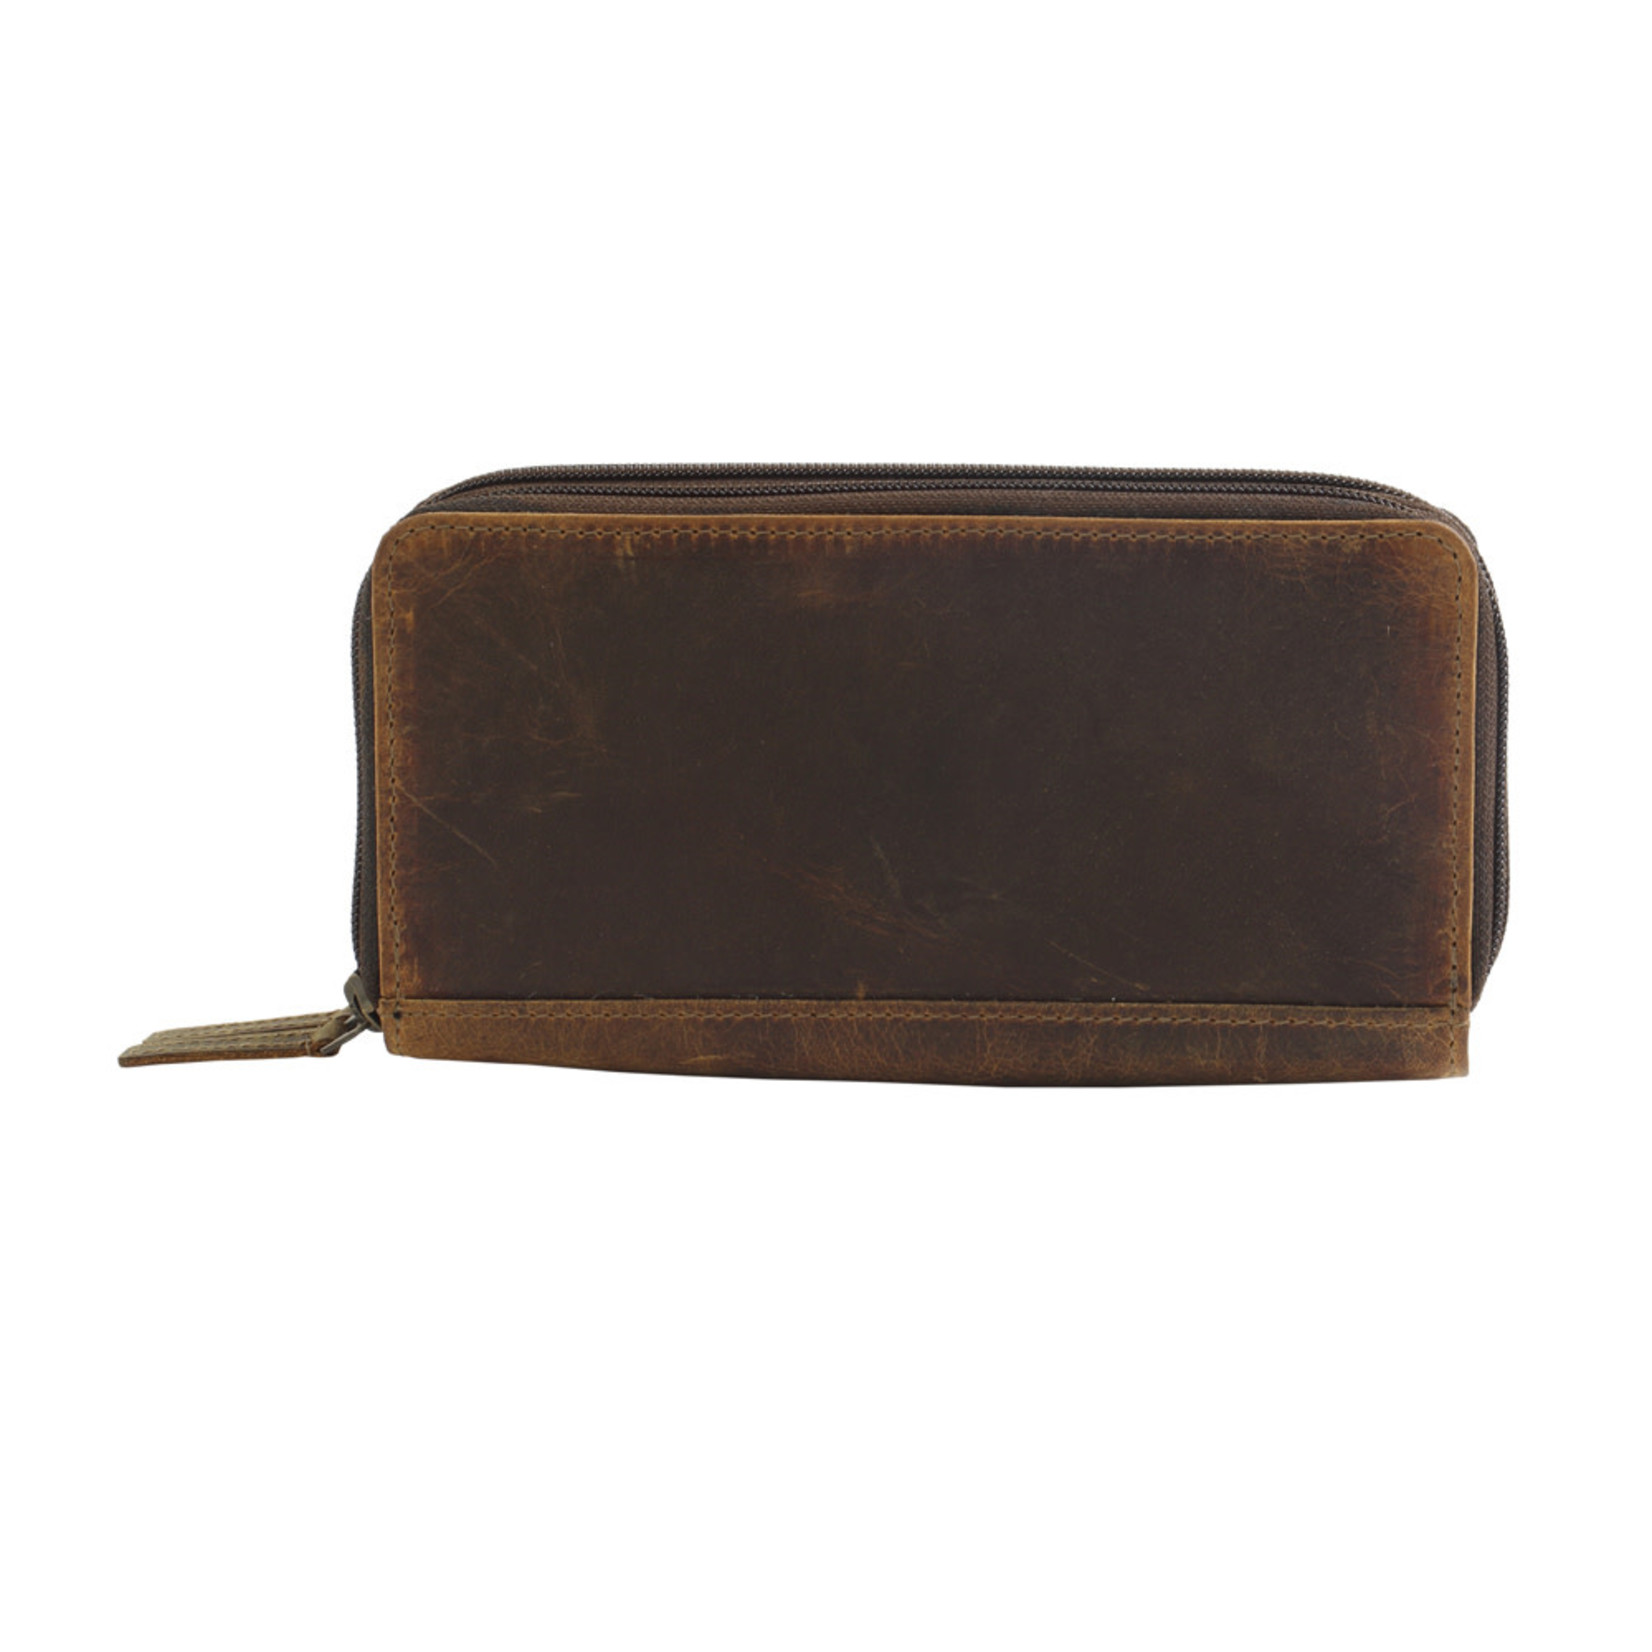 Myra Bags S-2721 Timber Time Leather Wallet